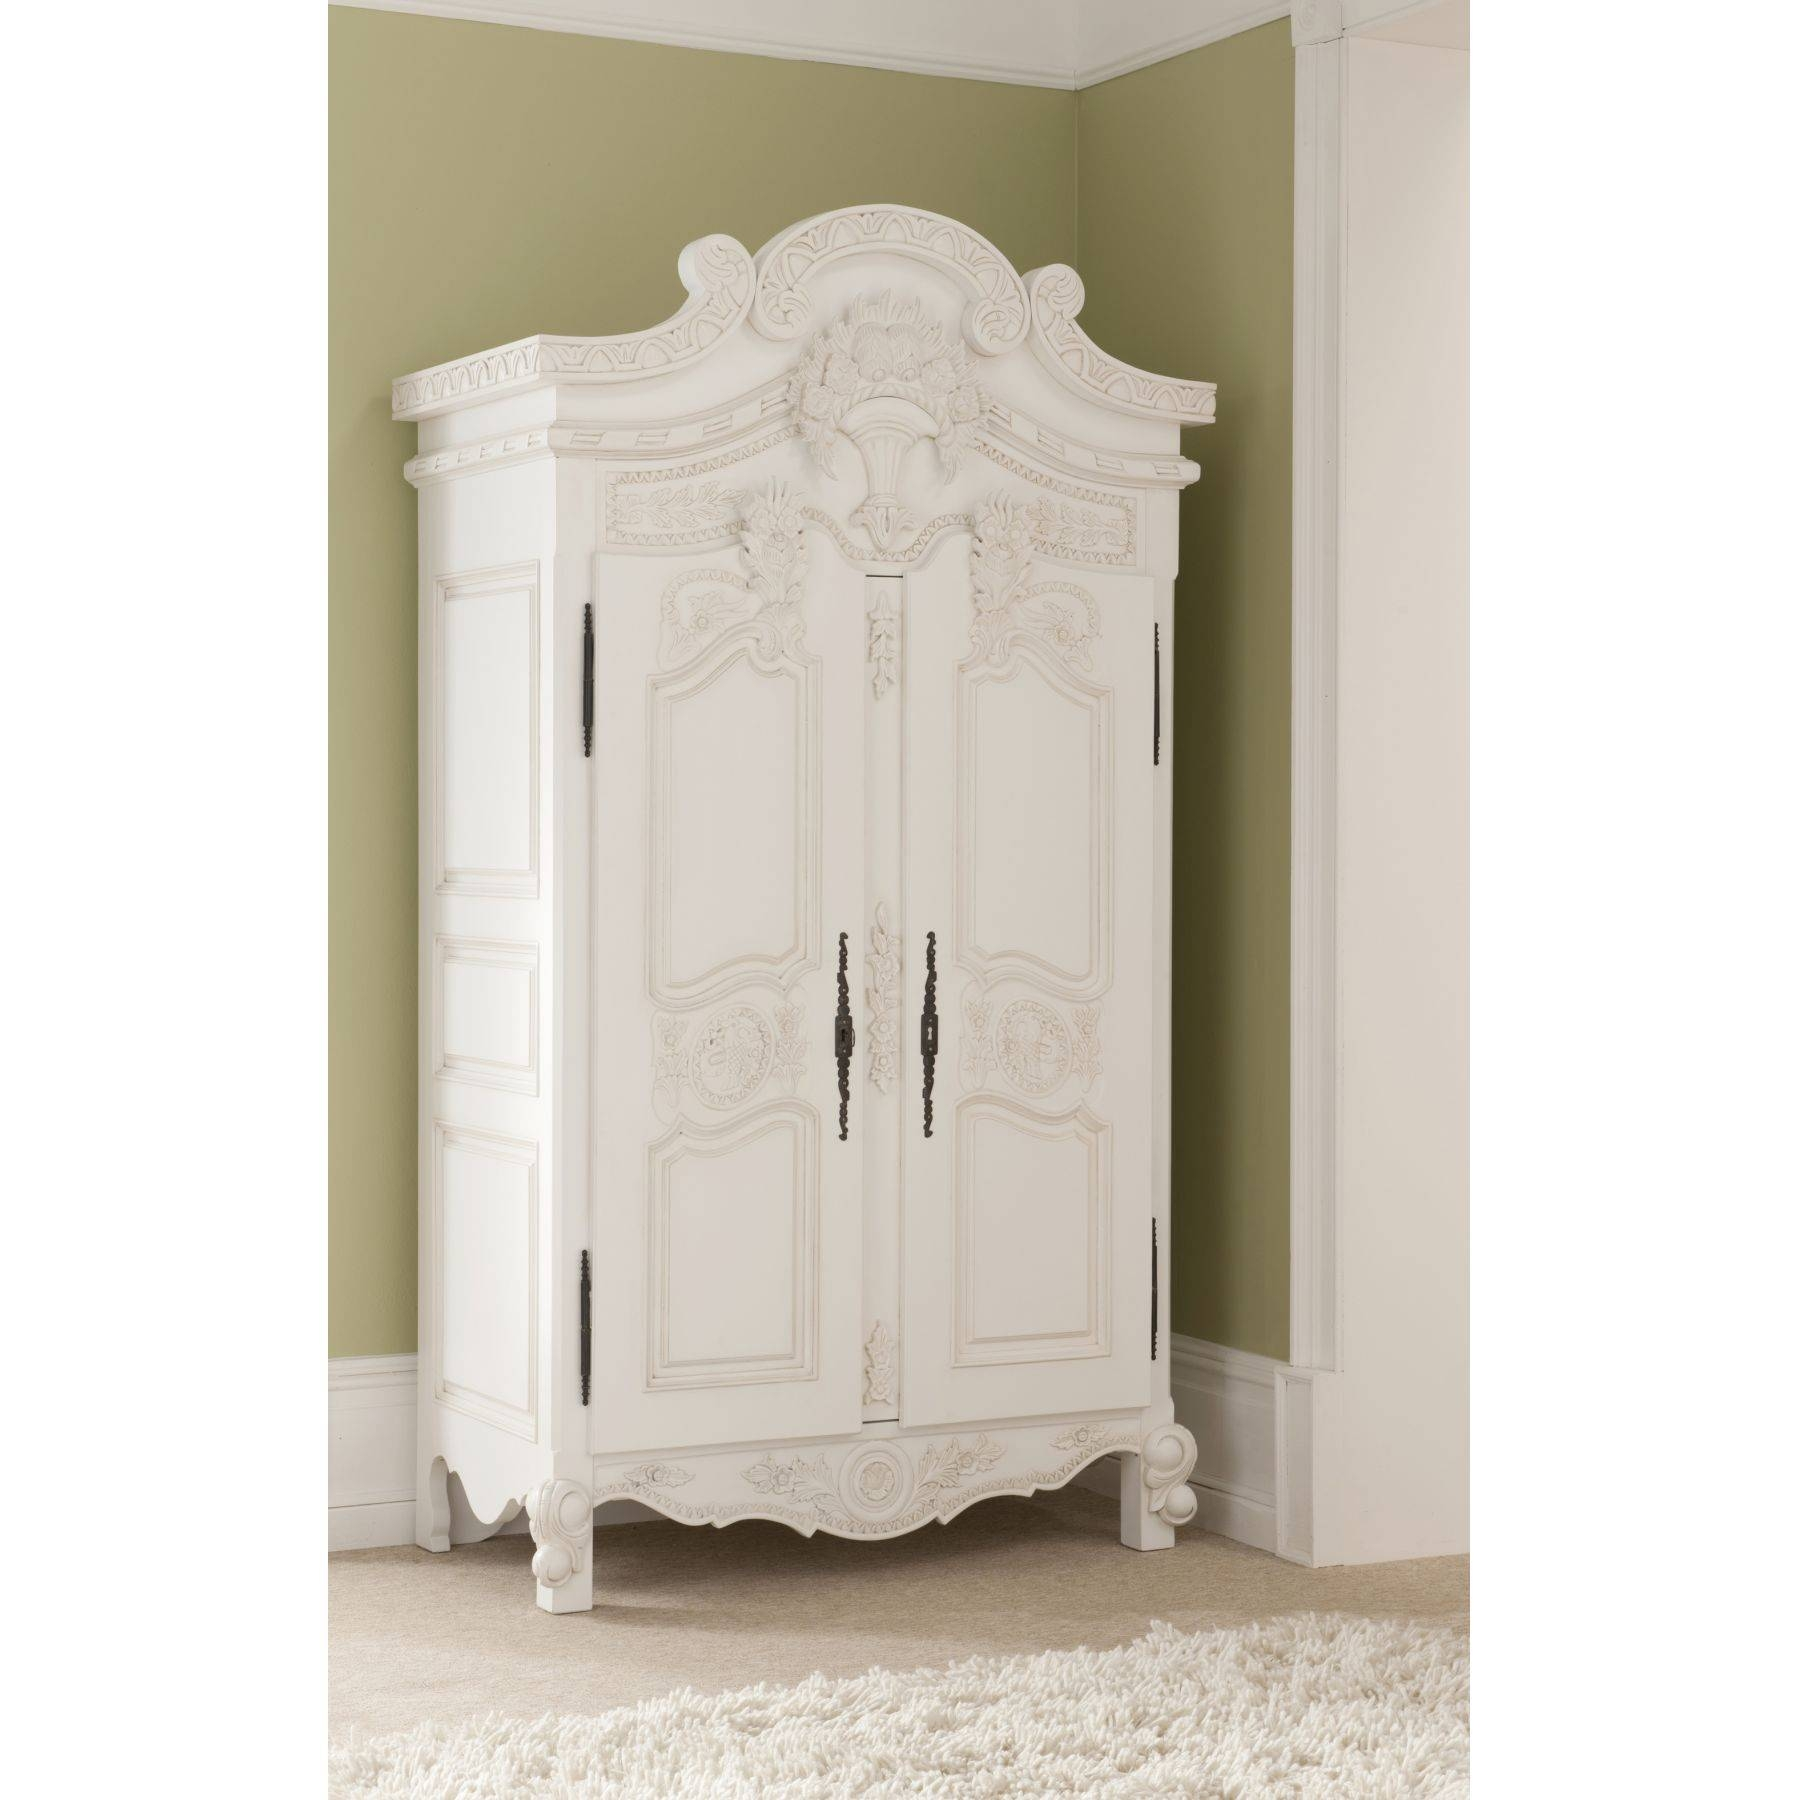 Rococo Antique French Bed (Size: Single) + Roccoco Antique French inside Small Tallboy Wardrobes (Image 11 of 15)